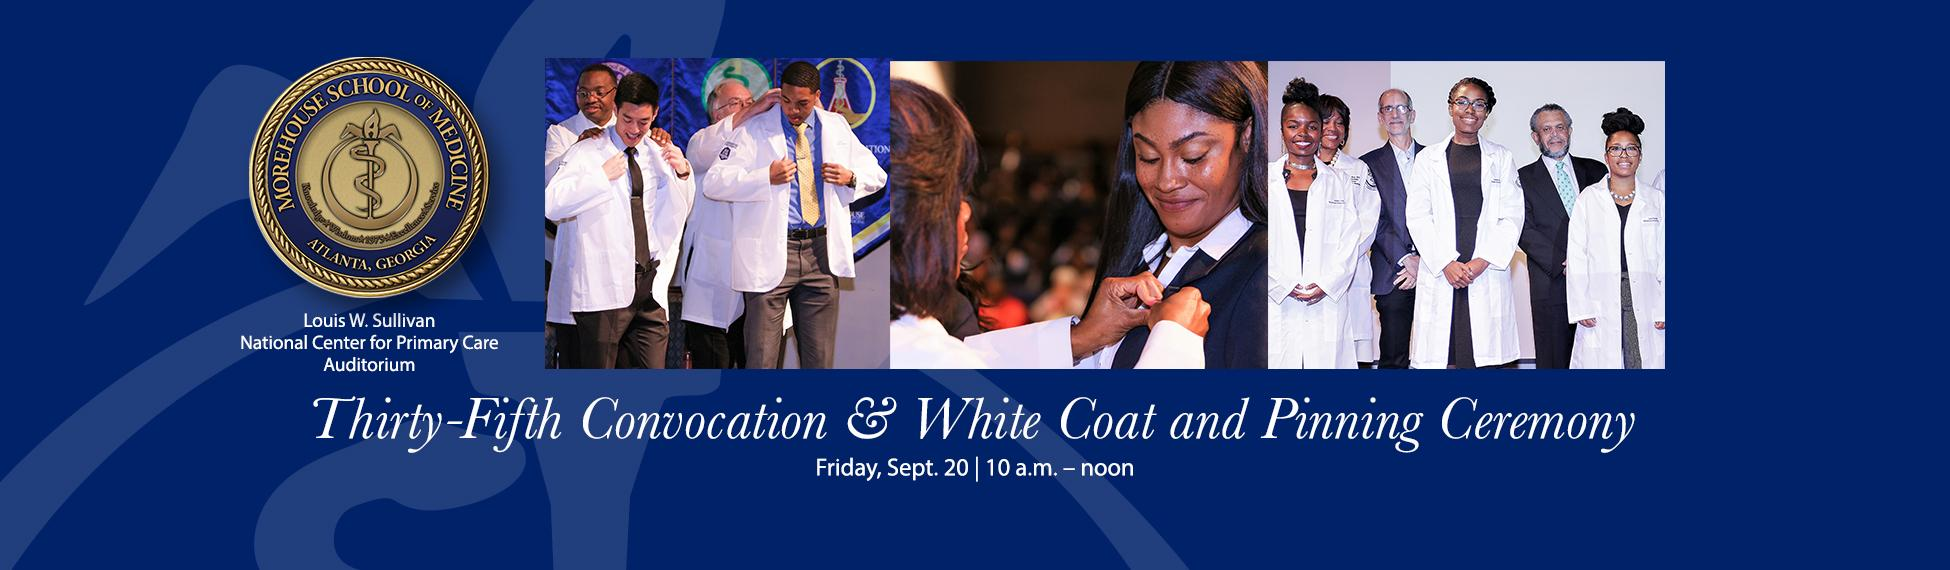 35th Convocation & White Coat Pinning Ceremony